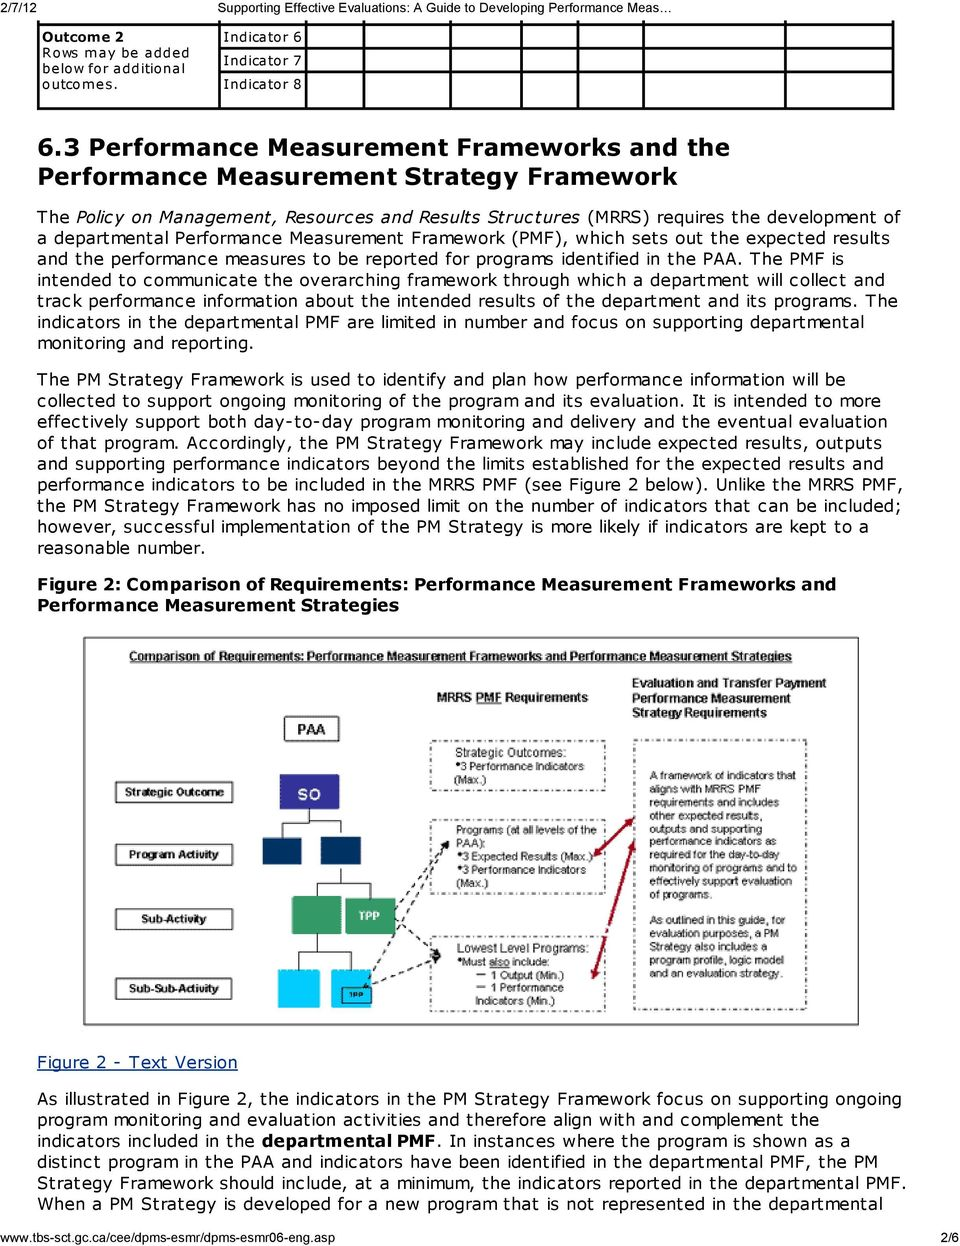 Performance Measurement Framework (PMF), which sets out the expected results and the performance measures to be reported for programs identified in the PAA.